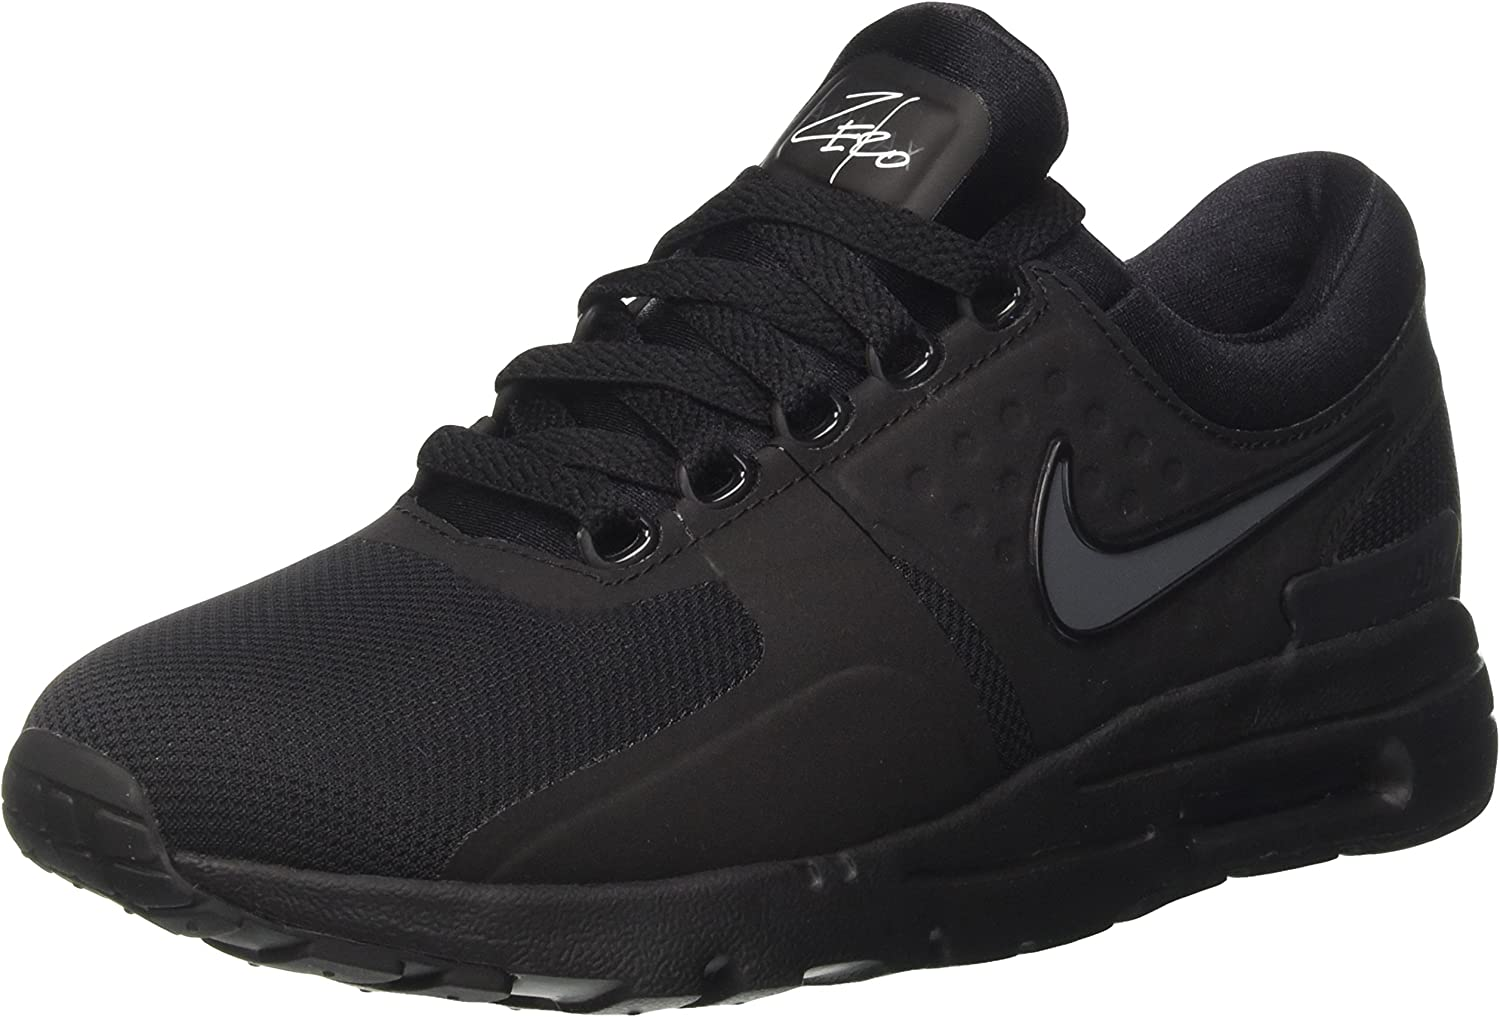 Nike Womens Air Max Zero Running Trainers 857661 Sneakers Shoes UK 4.5 US 7 EU 38, Black Dark Grey White 012